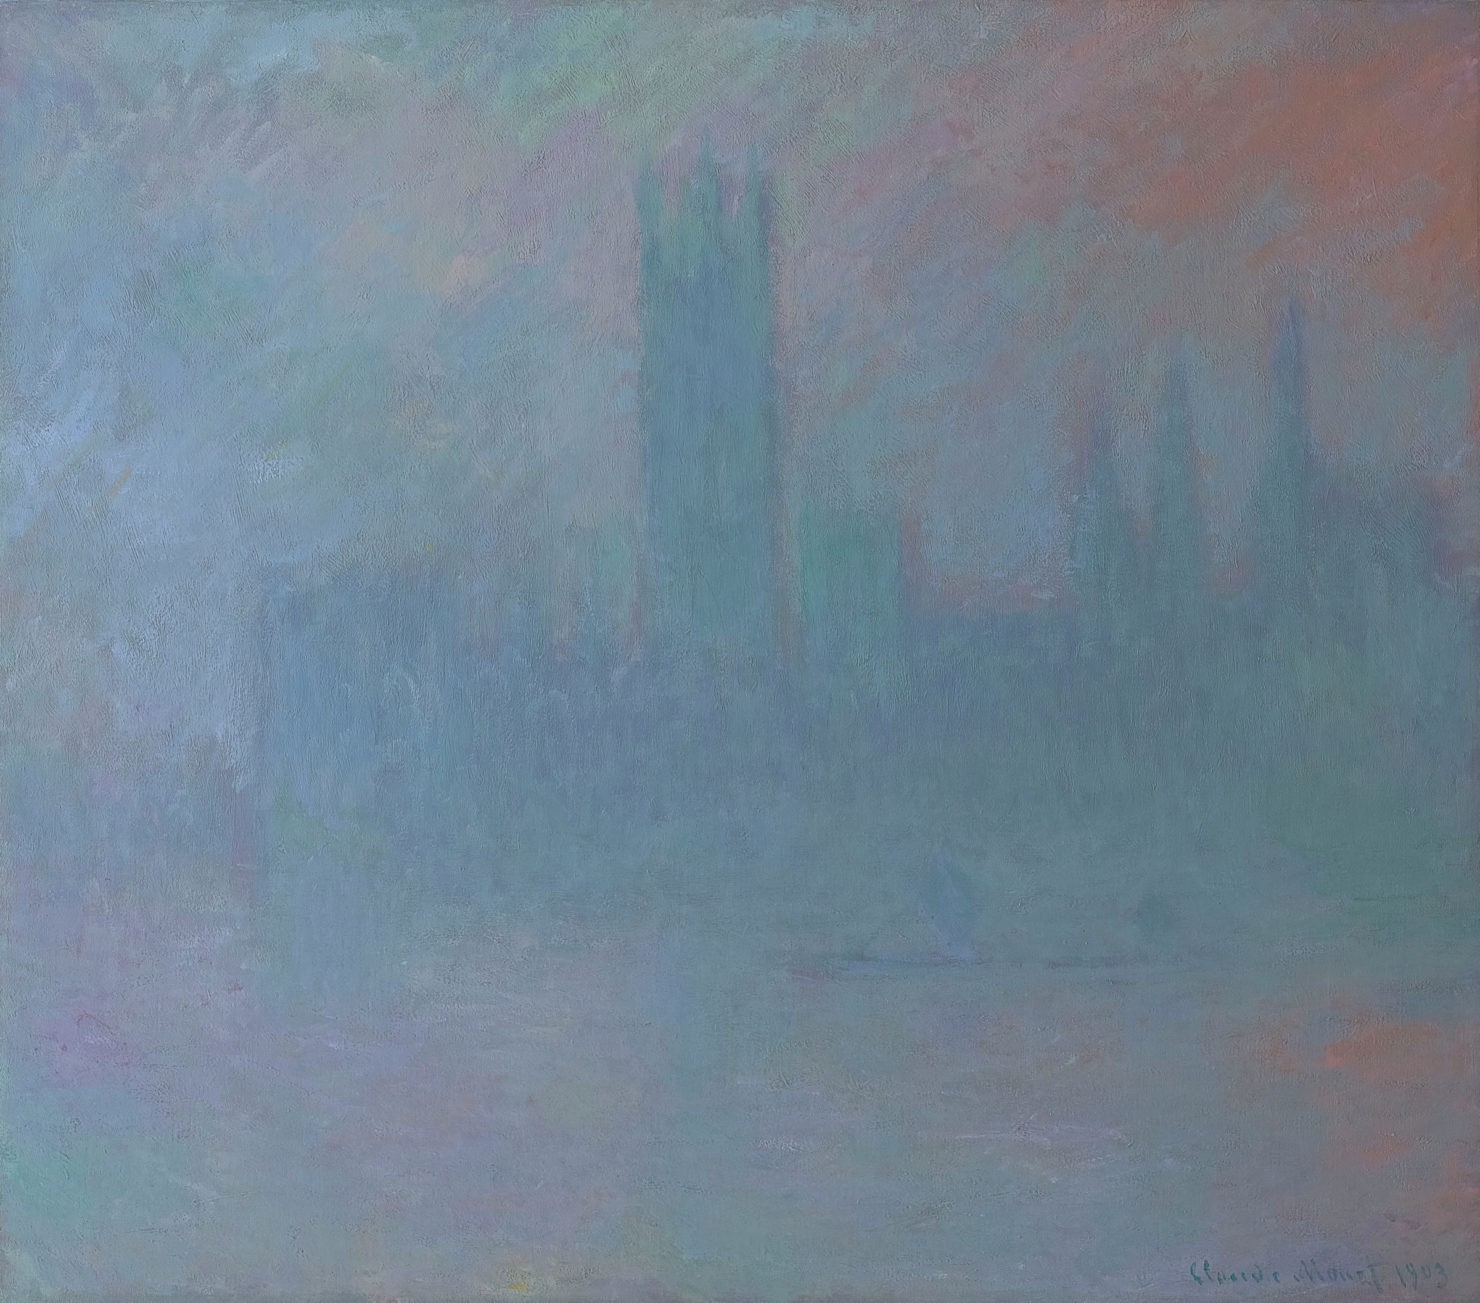 Impressionist landscape painting by Monet showing a large building obscured by colorful fog.